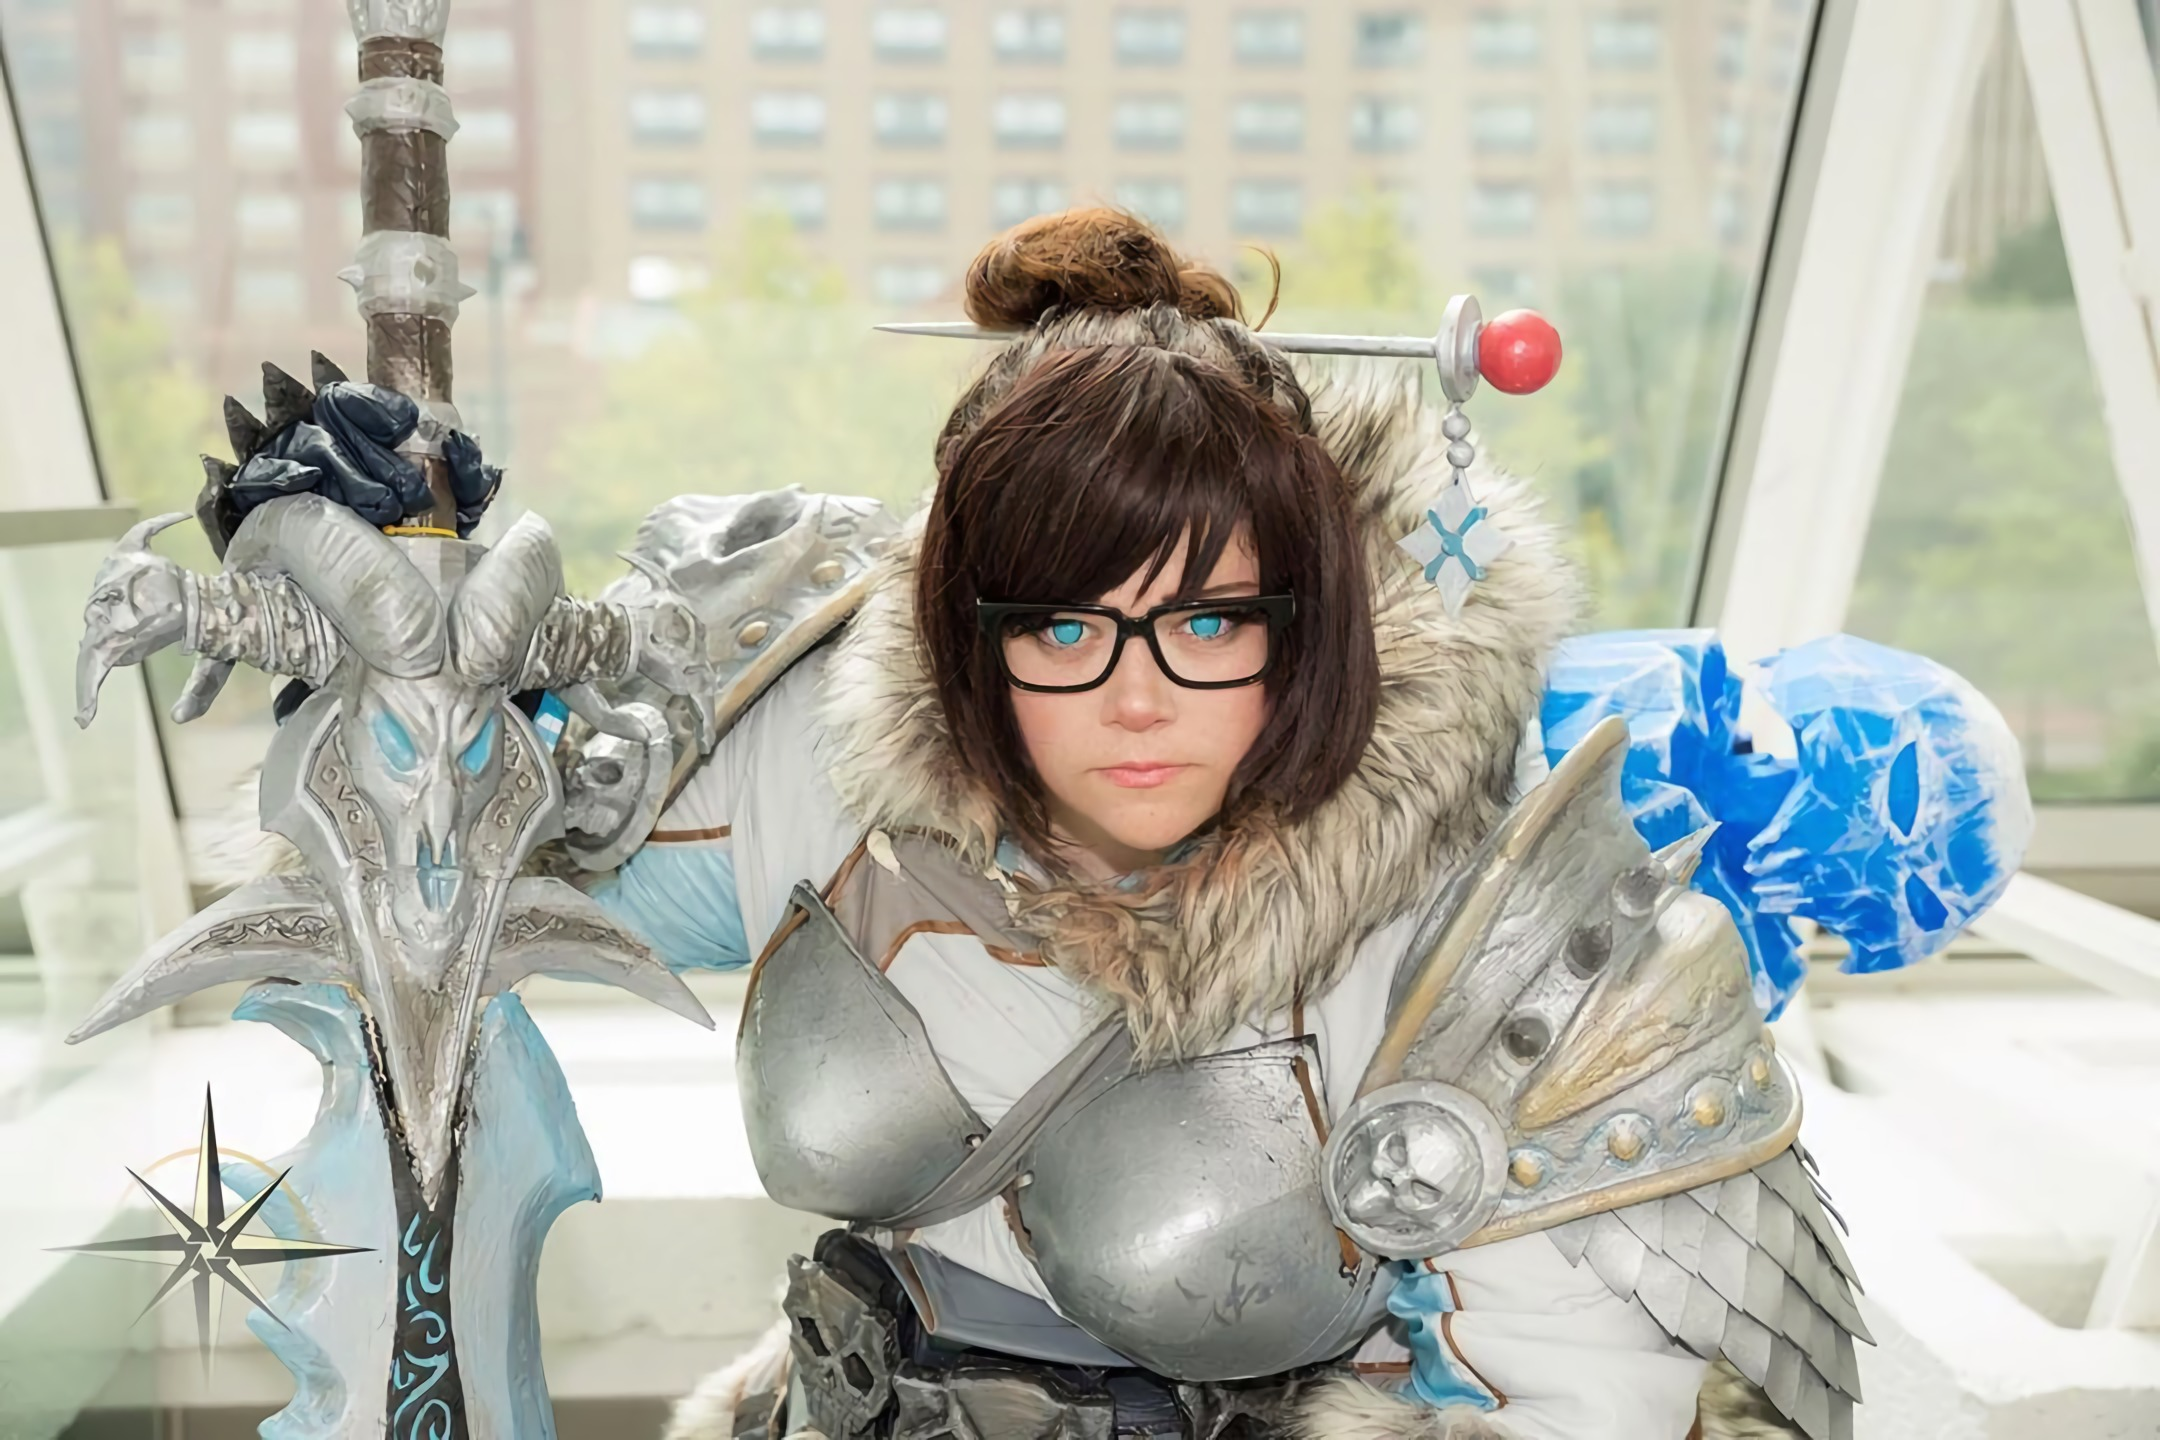 Mei truly becomes an ice queen when she merges with the Lich King in this awesome cosplay from Naetori.